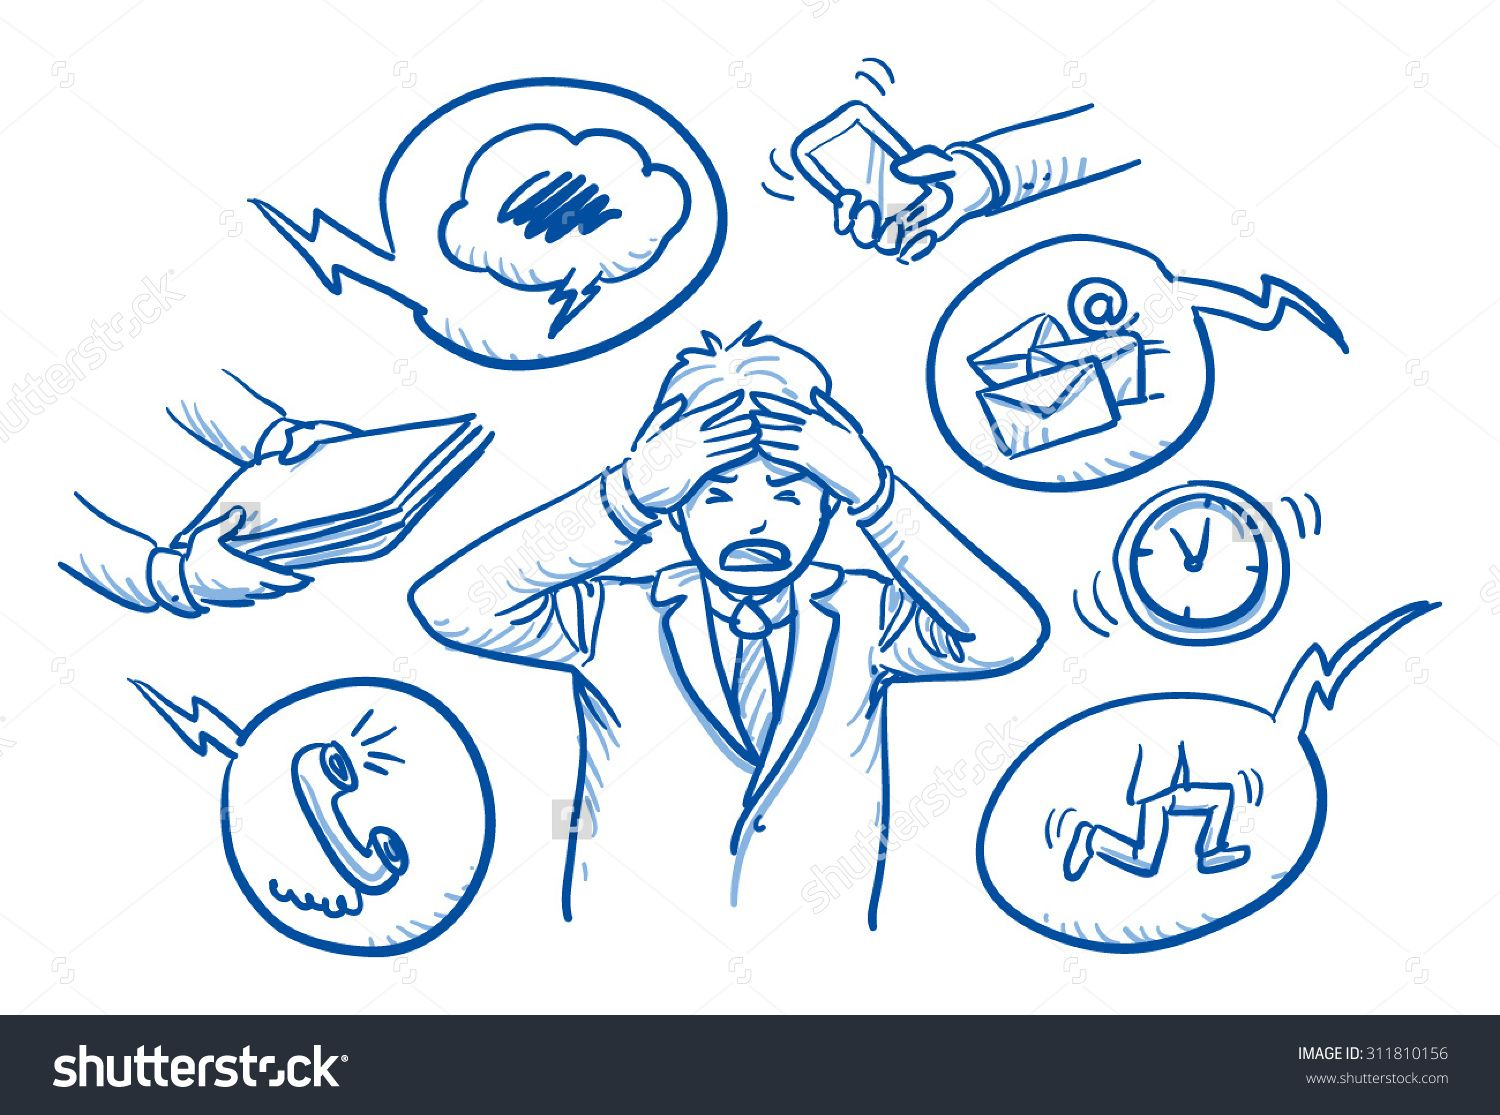 1500x1115 Business Man Holding His Head In Pain, Surrounded By Work Icons